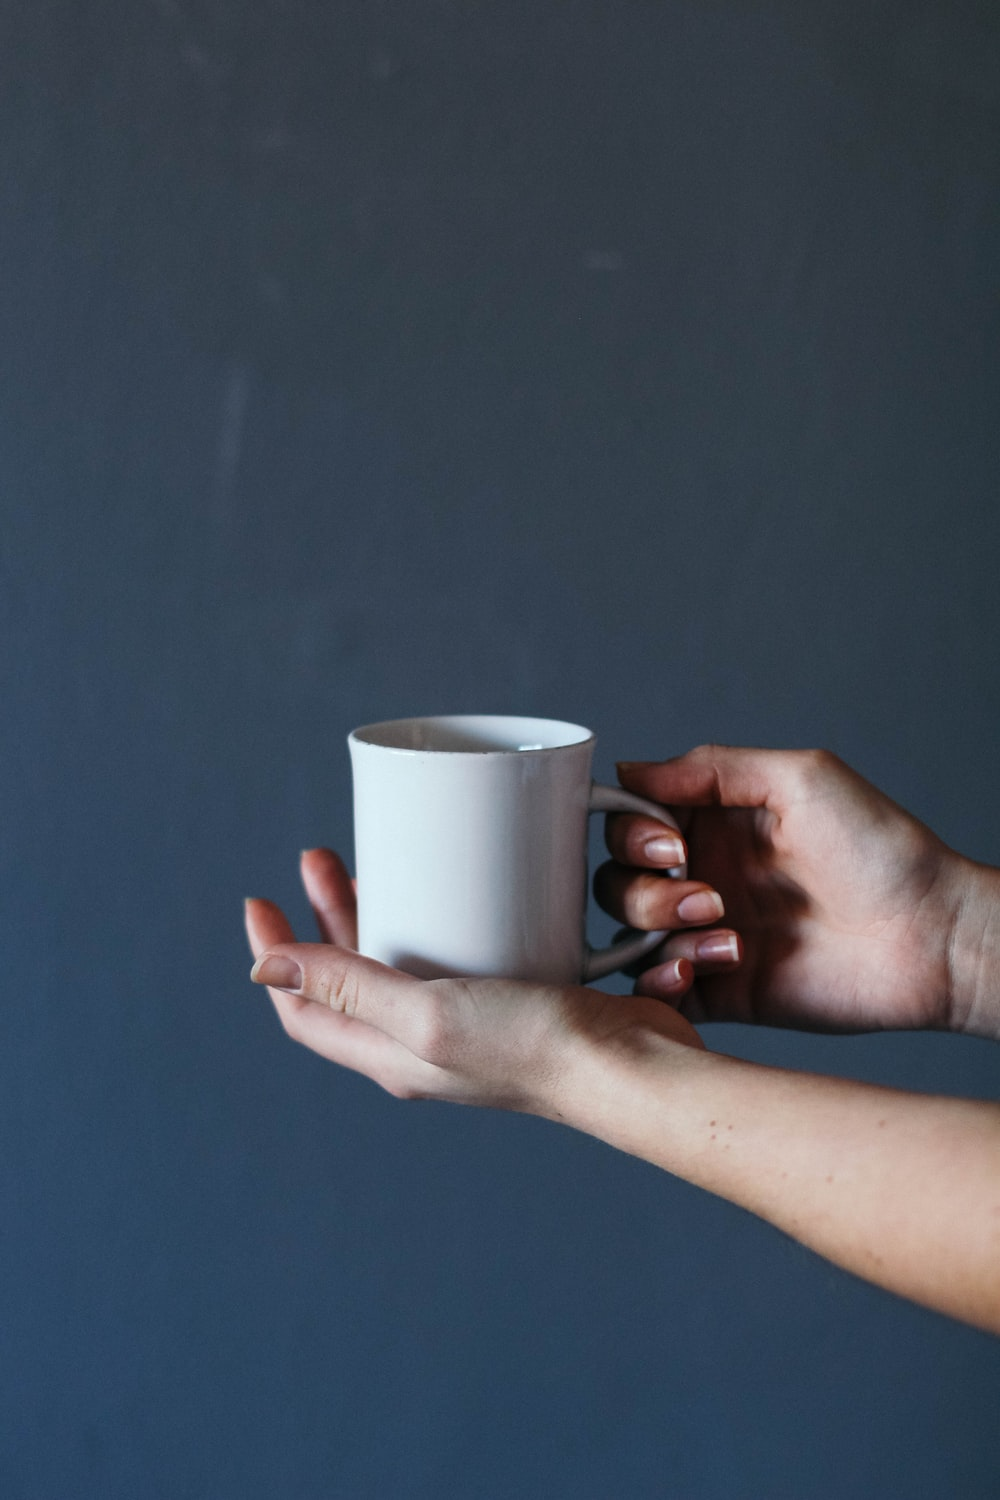 person holding grey ceramic mug